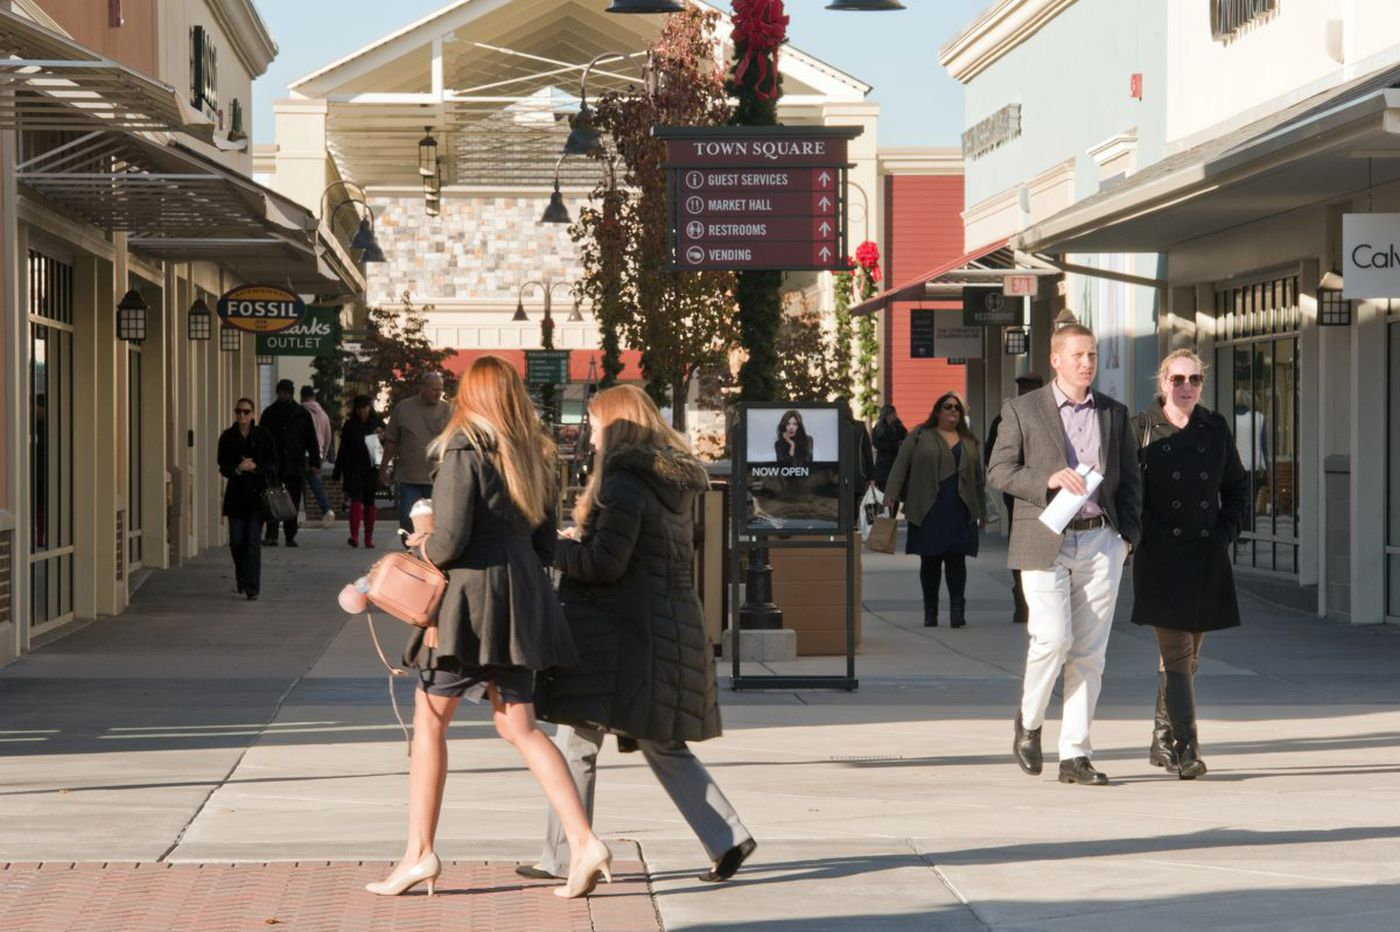 Shopping-survival tips for Black Friday and beyond